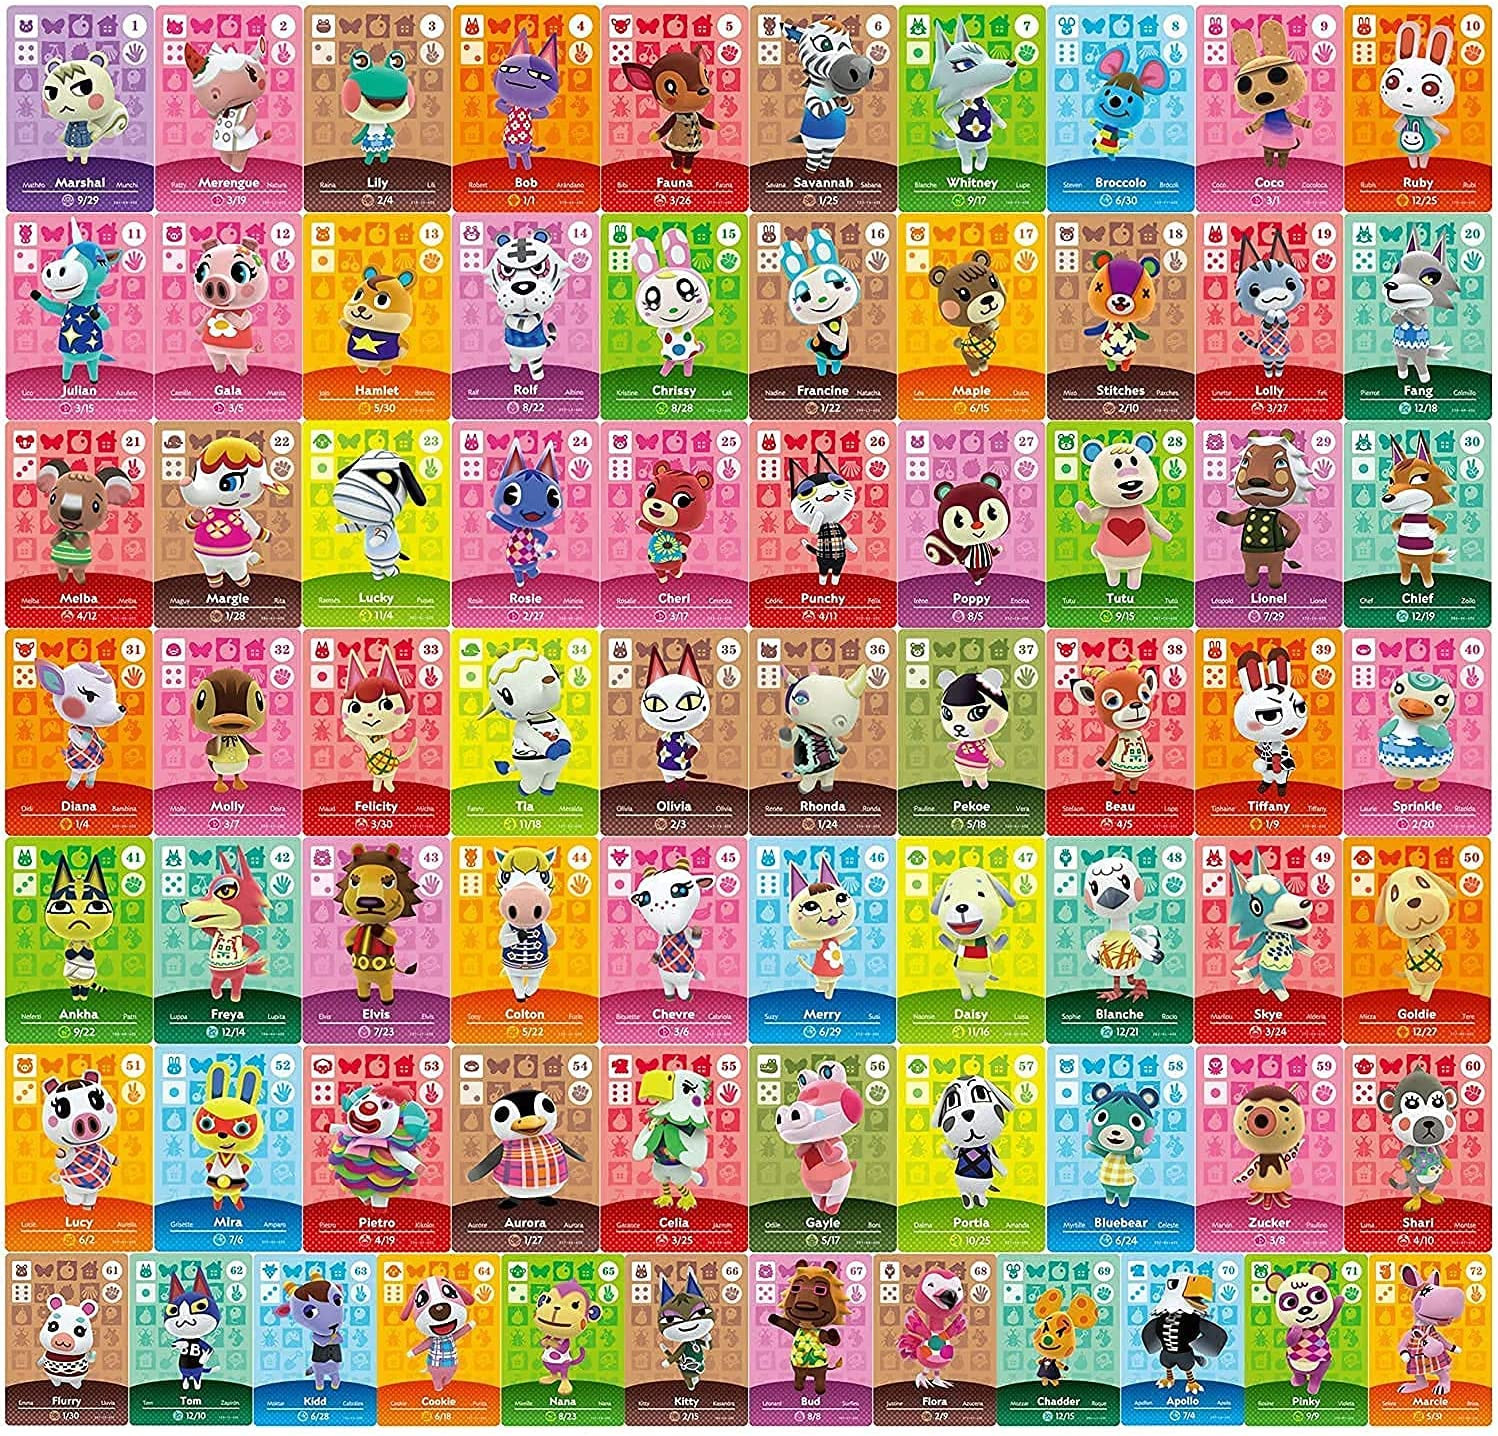 72 PCS NFC Tag Tiny Mini Game Cards ACNH Series 1-4 for Animal Crossing New Horizons Amiibo Switch/Switch Lite/Wii U/New 3DS System